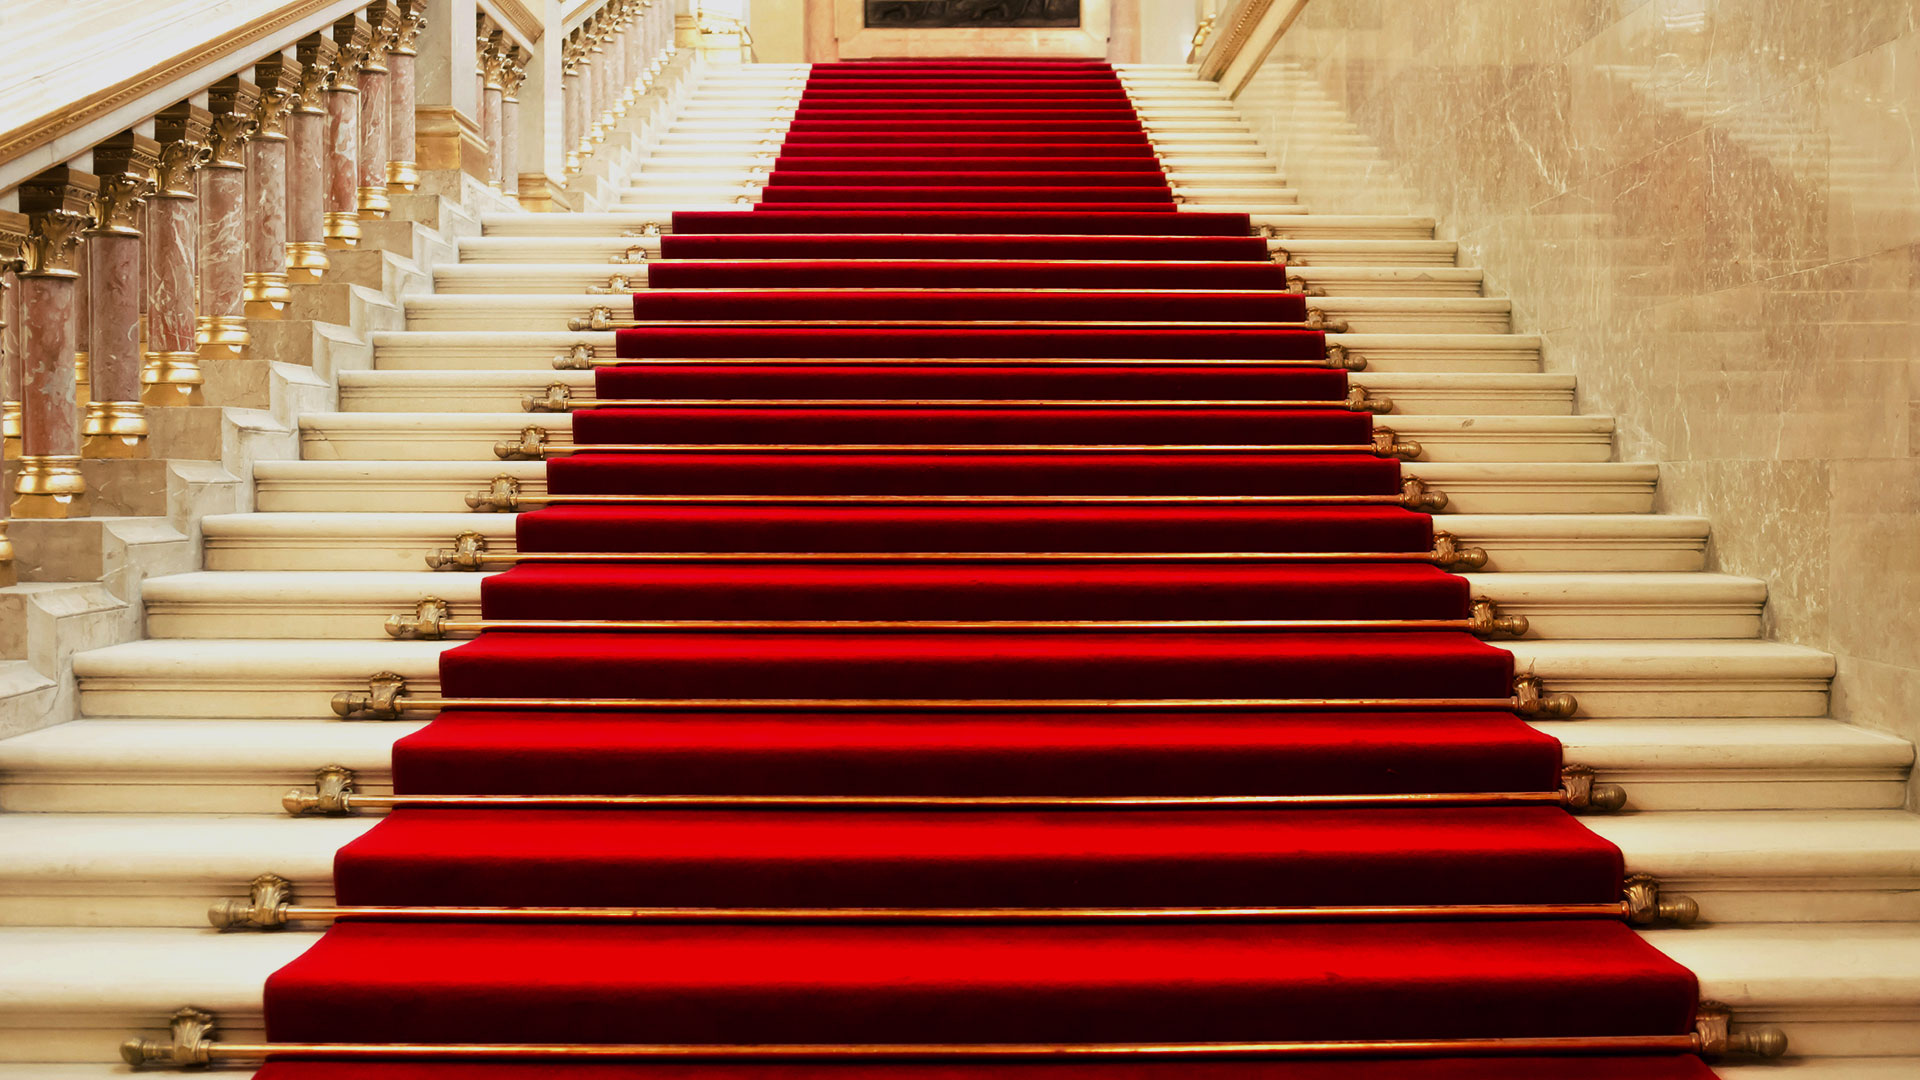 red-carpet-stairs-ss-1920 - Stairs PNG HD